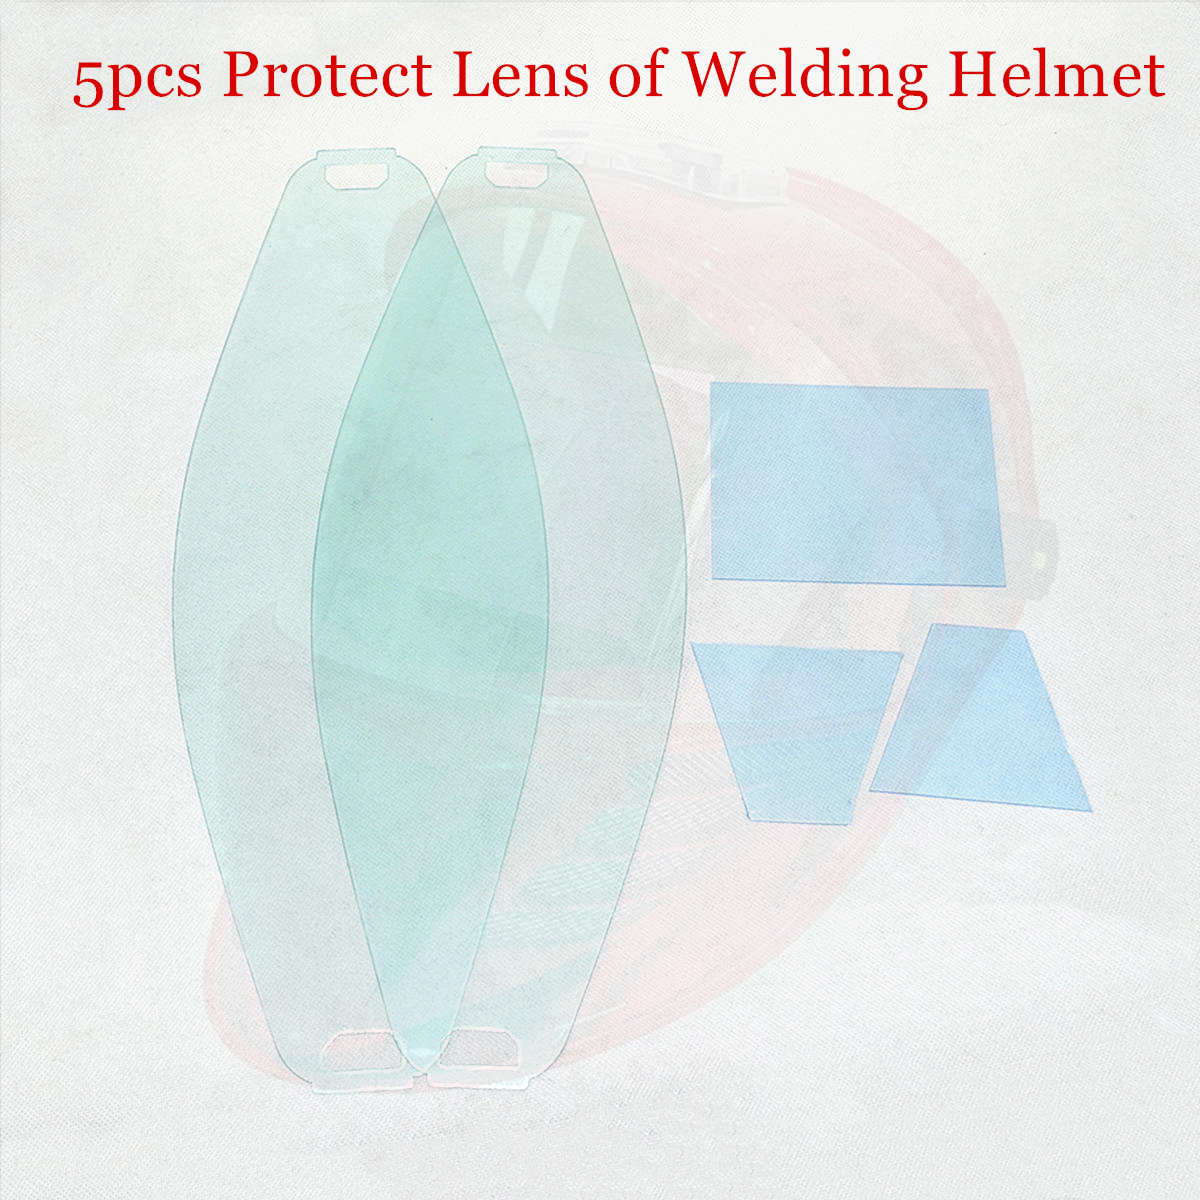 Protect Lens Front Inner Cover Lens 5pcs/set for 3 View Window Auto Darkening Welding Mask CE ANSI CSA AS/NZS Welding Helmet(China)